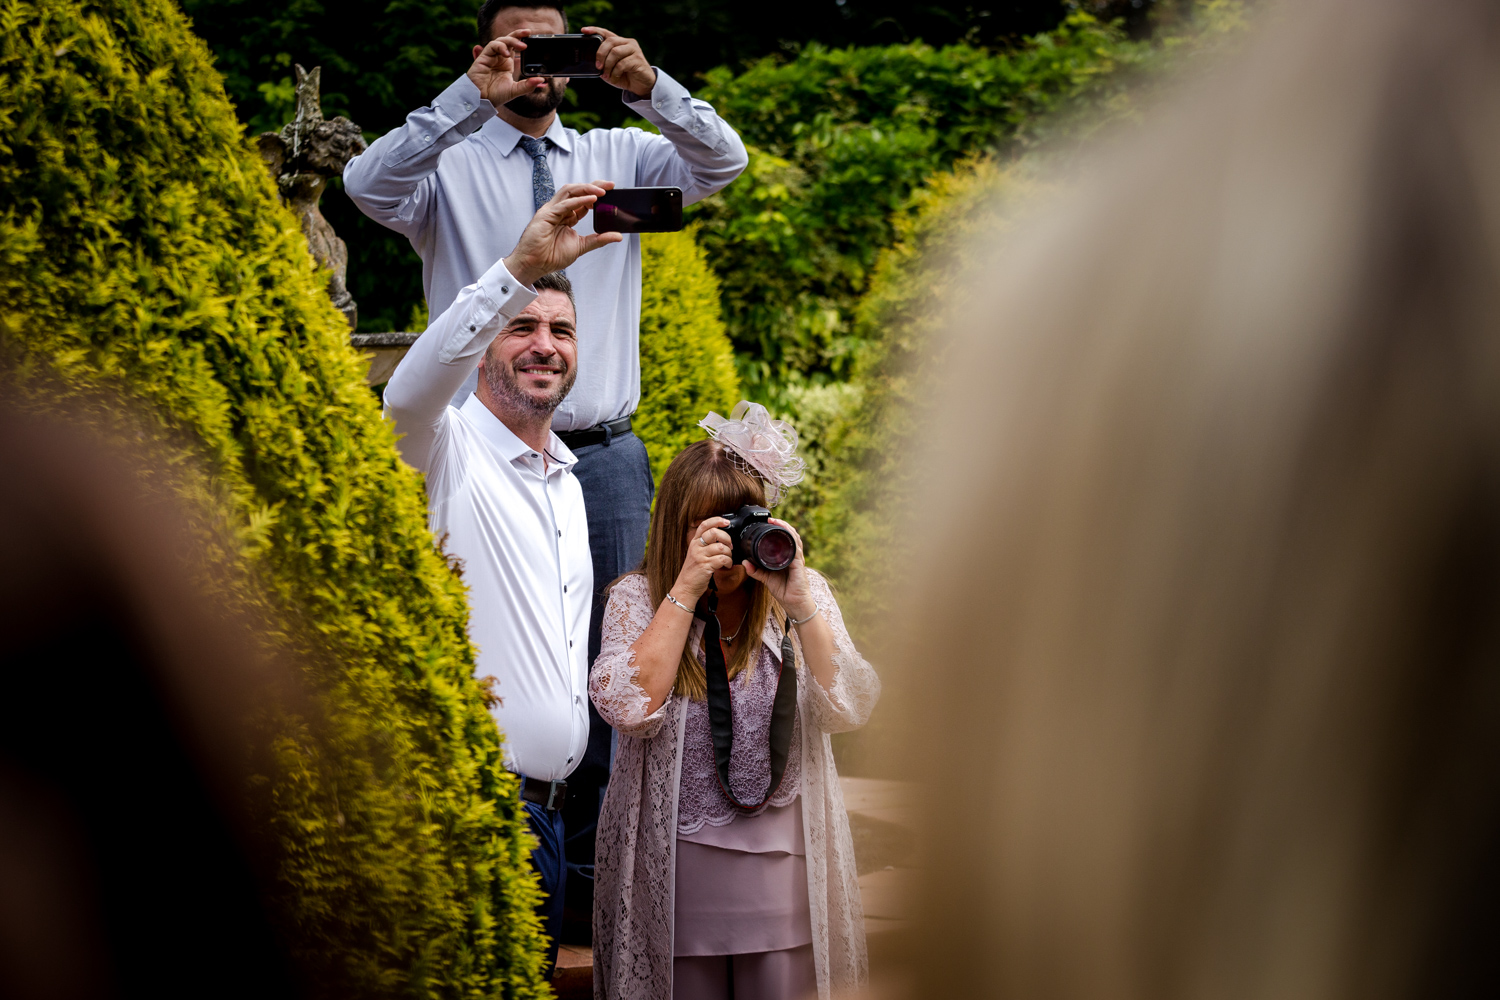 The bridal party at Nunsmere Hall in Cheshire